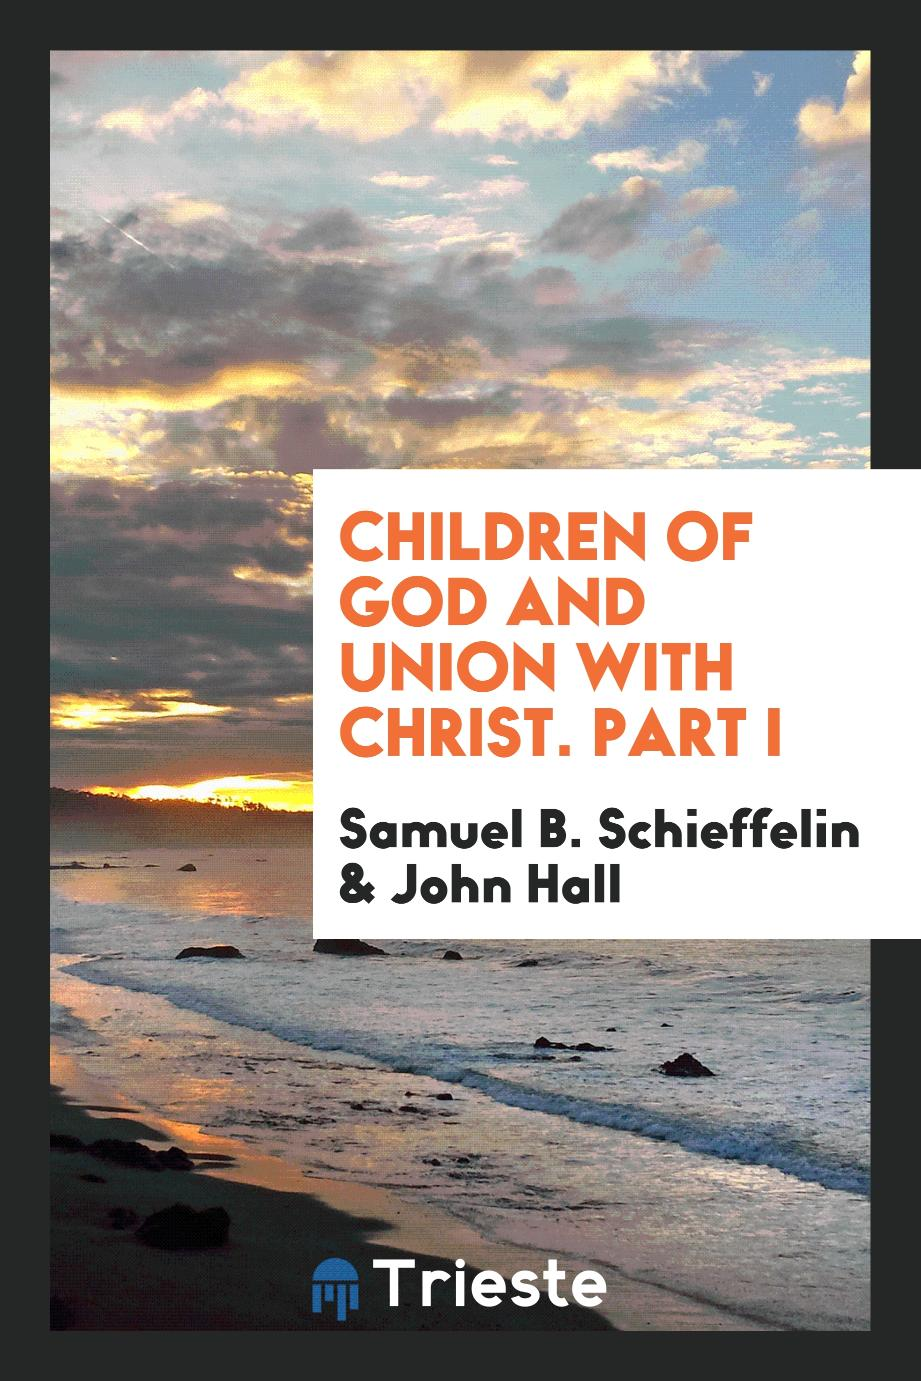 Children of God and Union with Christ. Part I